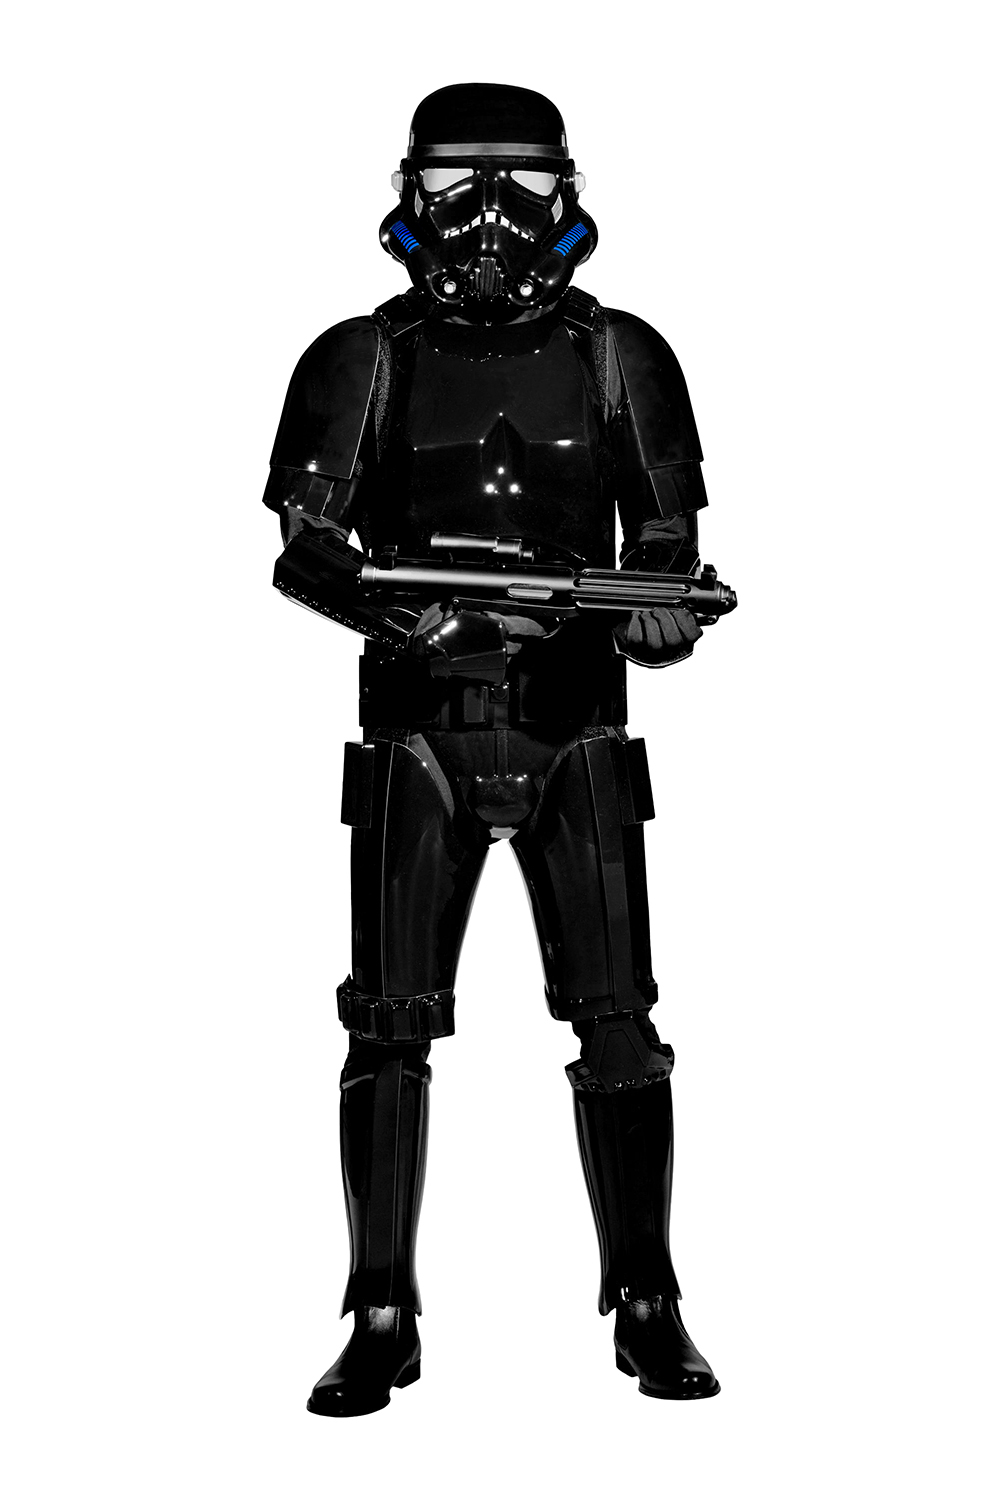 Shadowtrooper Costume Armour Packages available at www.StormtrooperStore.com - The Stormtrooper Store